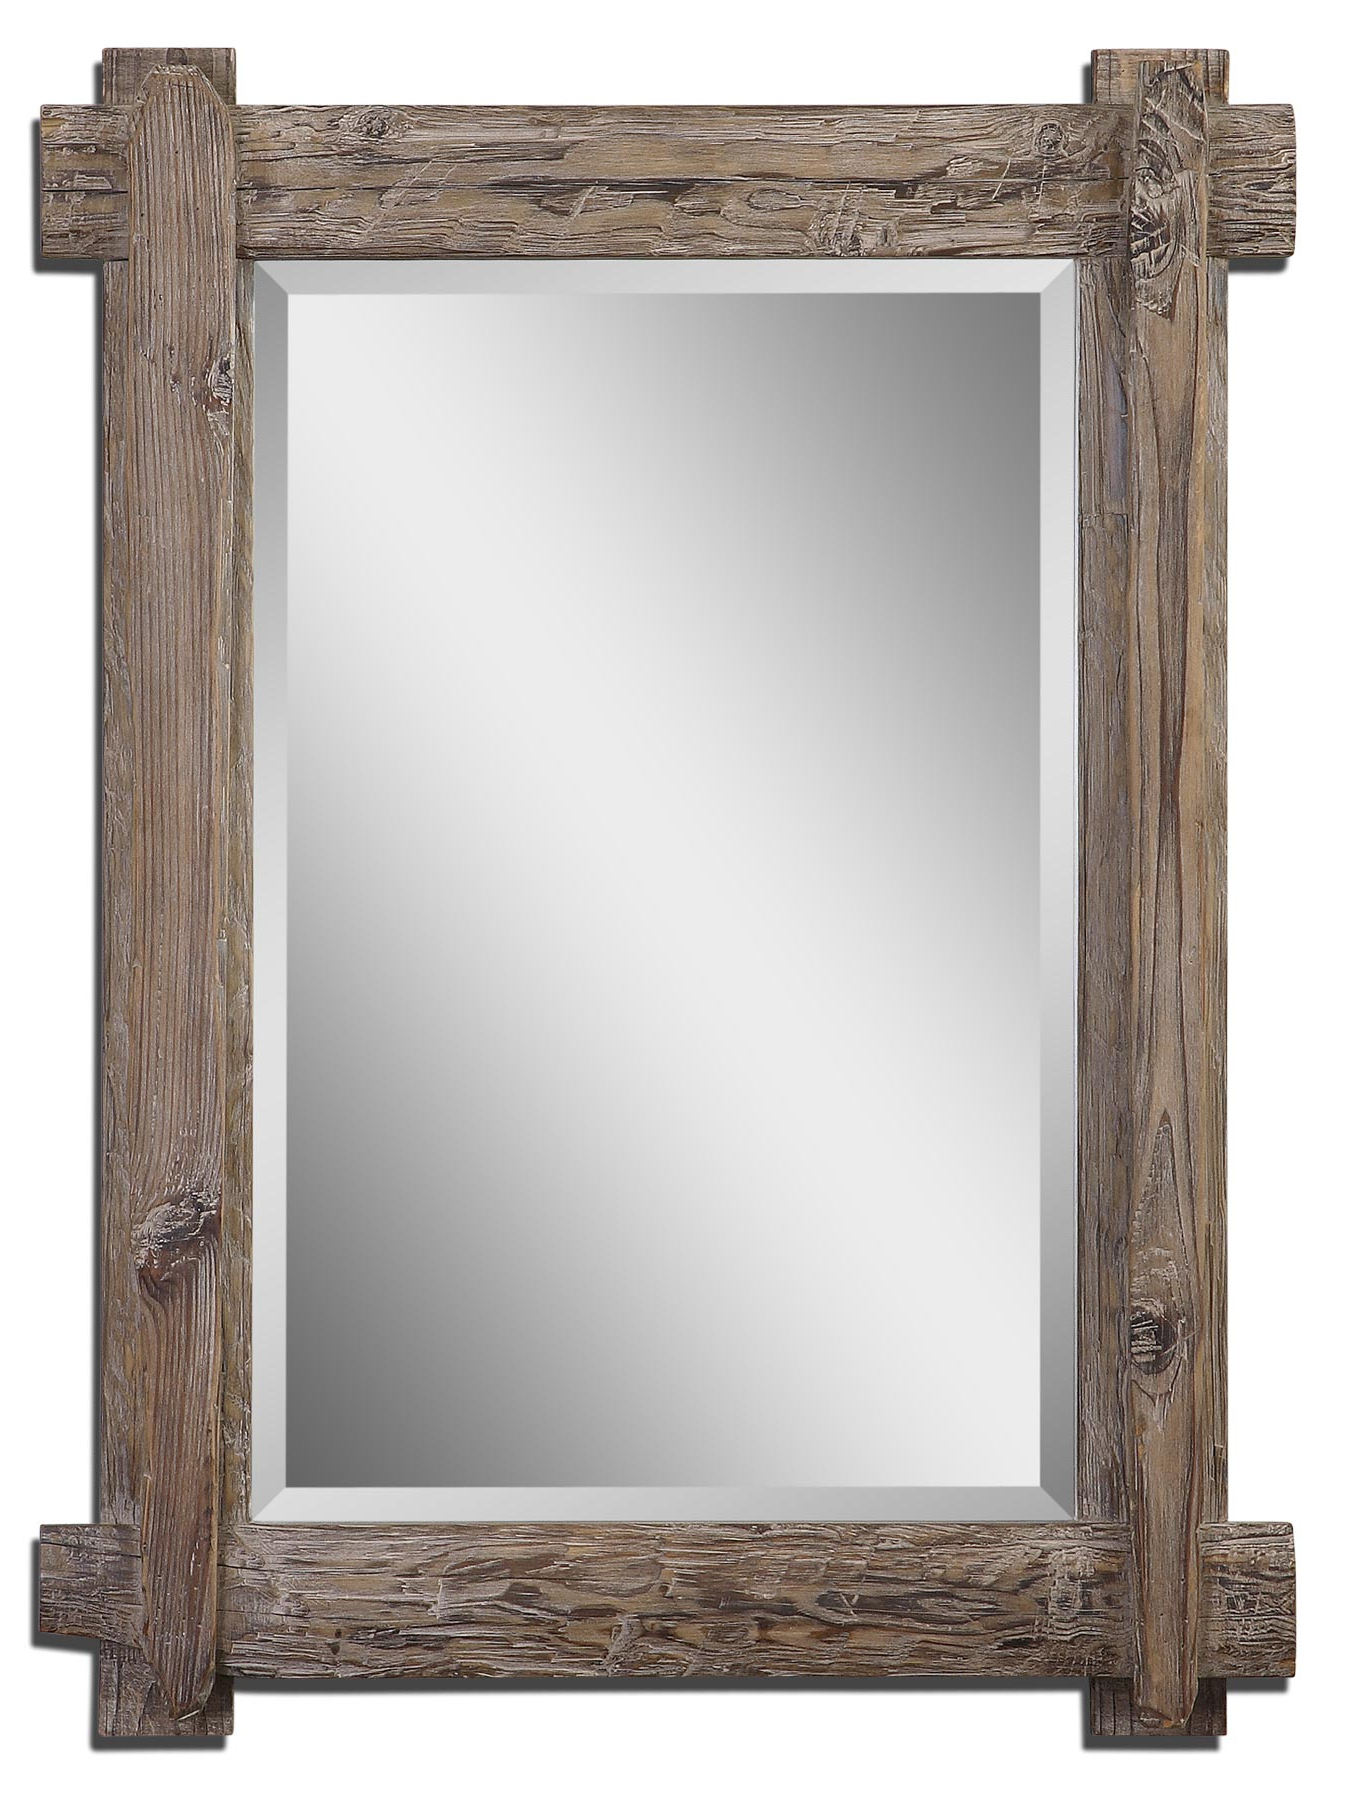 Large Wall Mirrors With Wood Frame With Regard To Well Known Wood Framed Wall Mirrors V Sanctuarycom Unfinished 43X32 (Gallery 14 of 20)